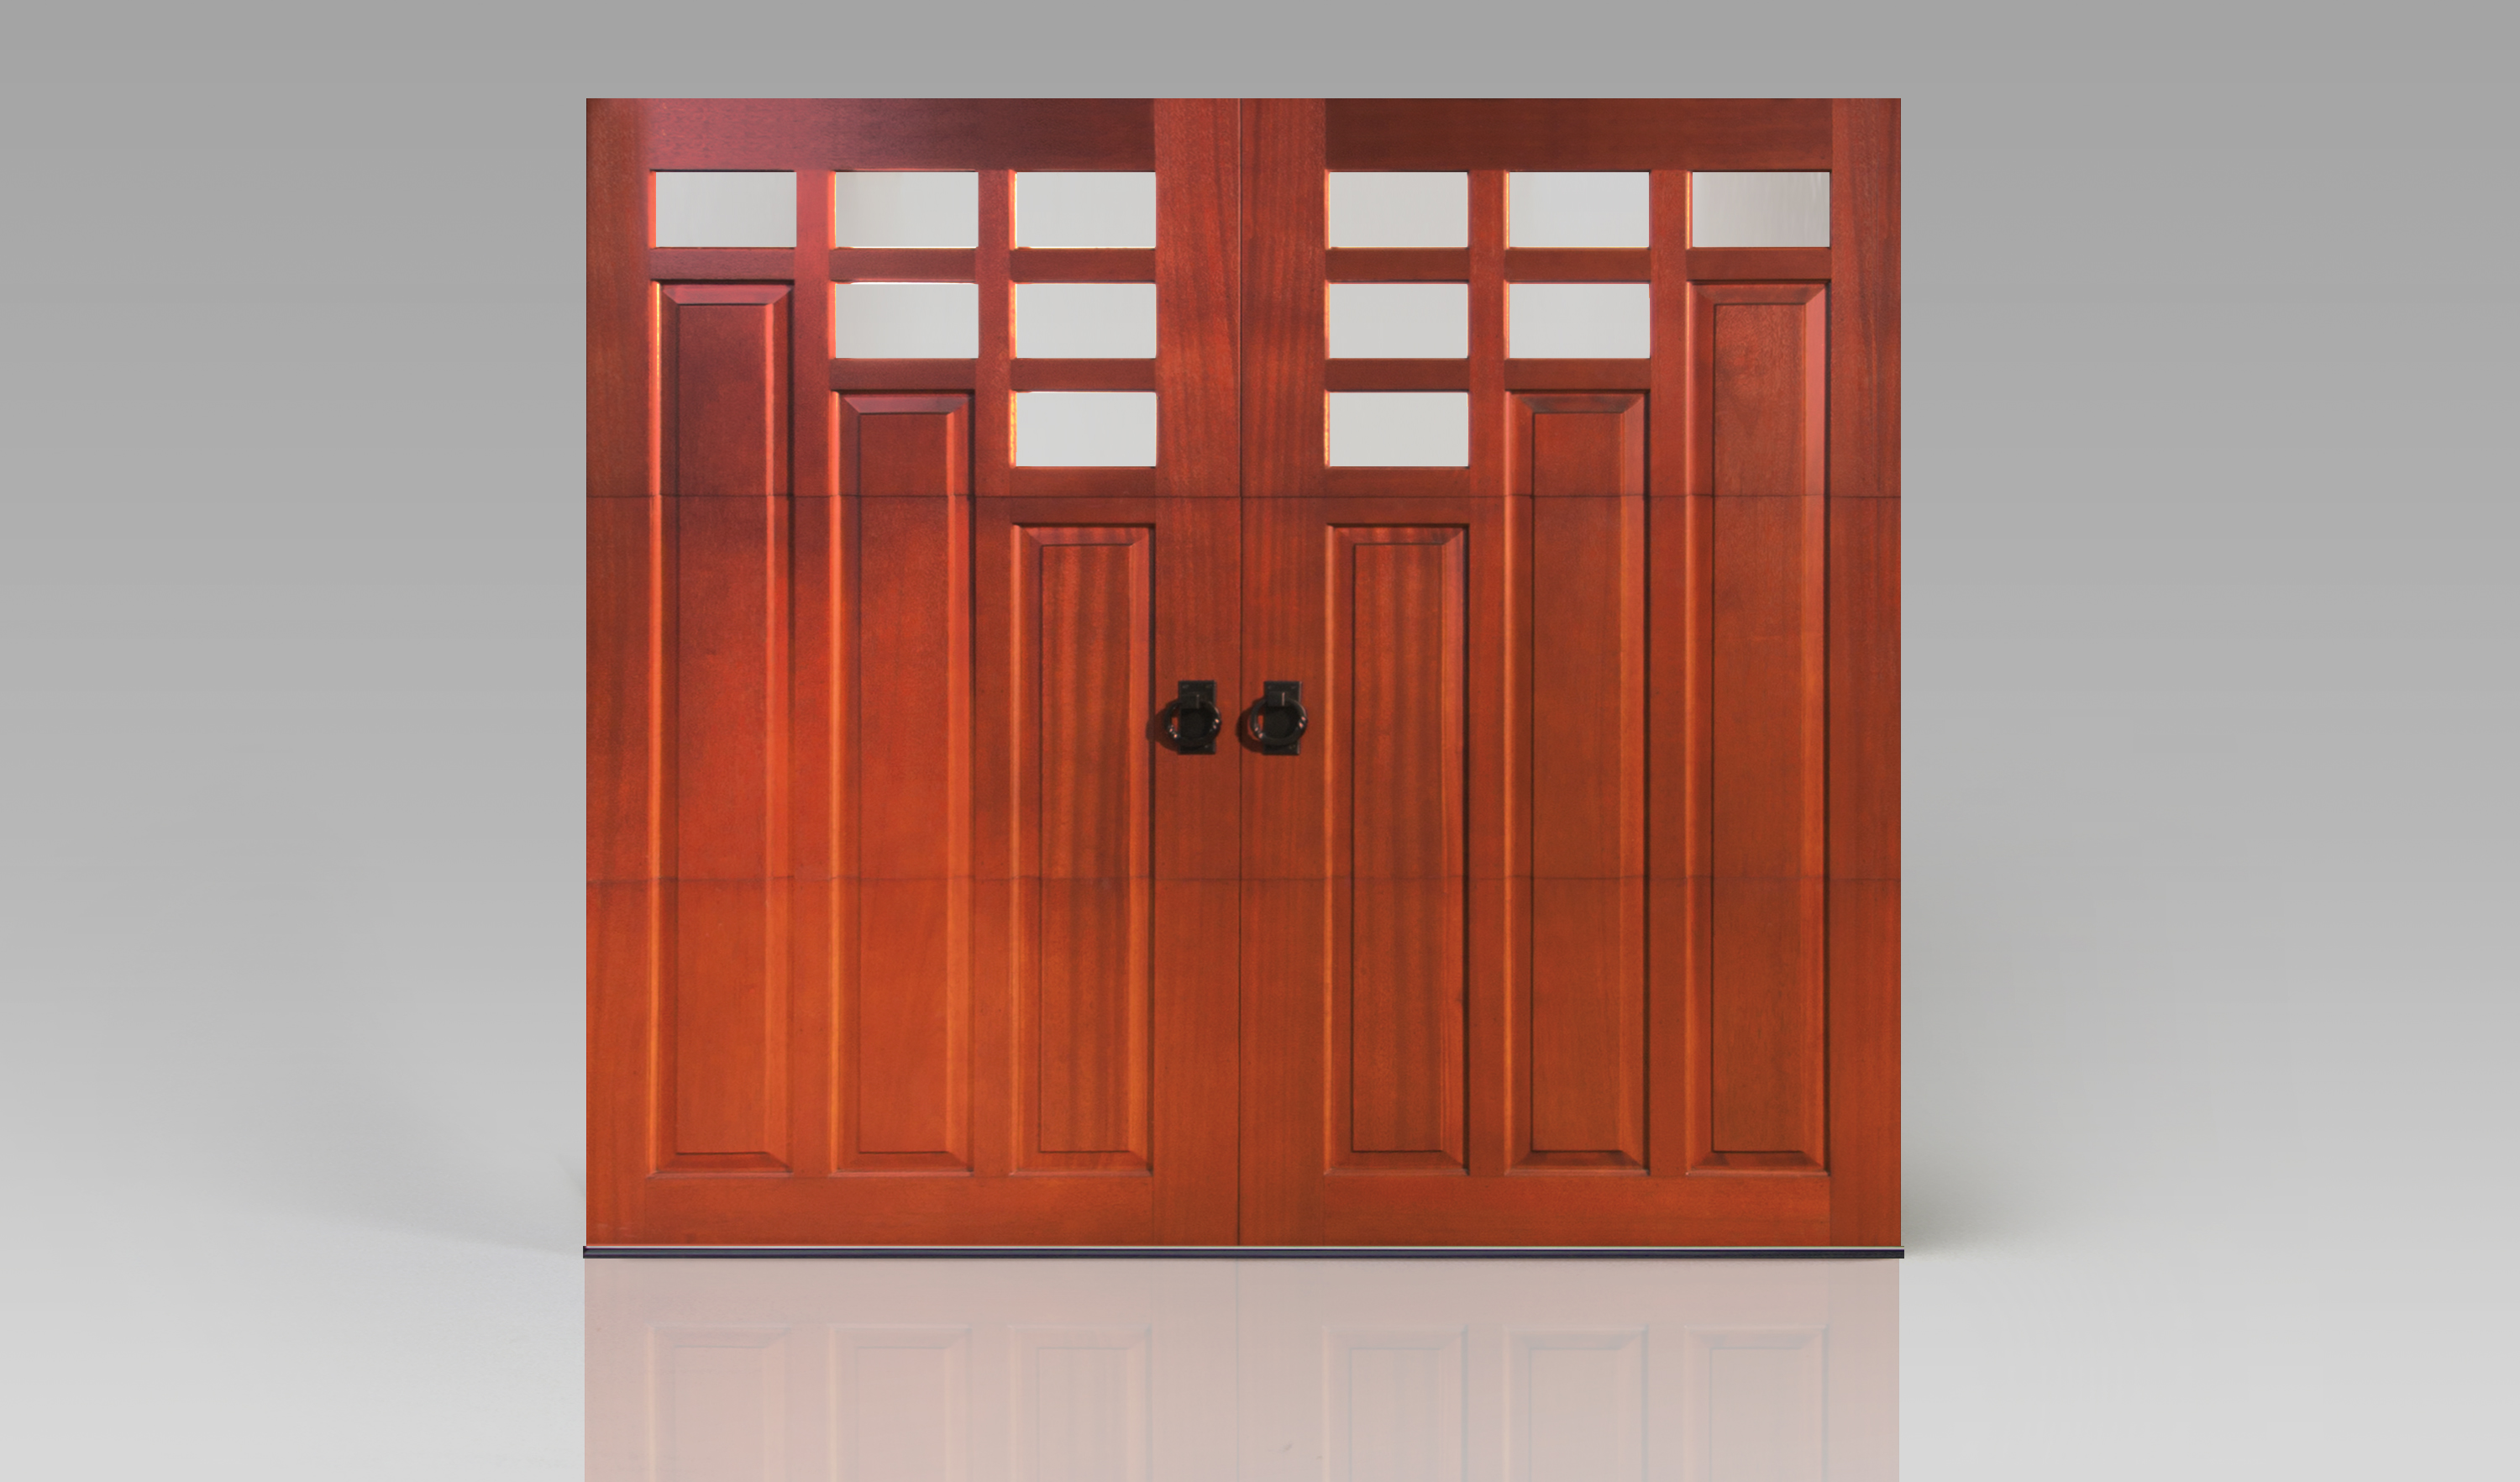 Reserve Wood Collection Custom Series 3 | Amelia Overhead Doors | (804) 561-5979